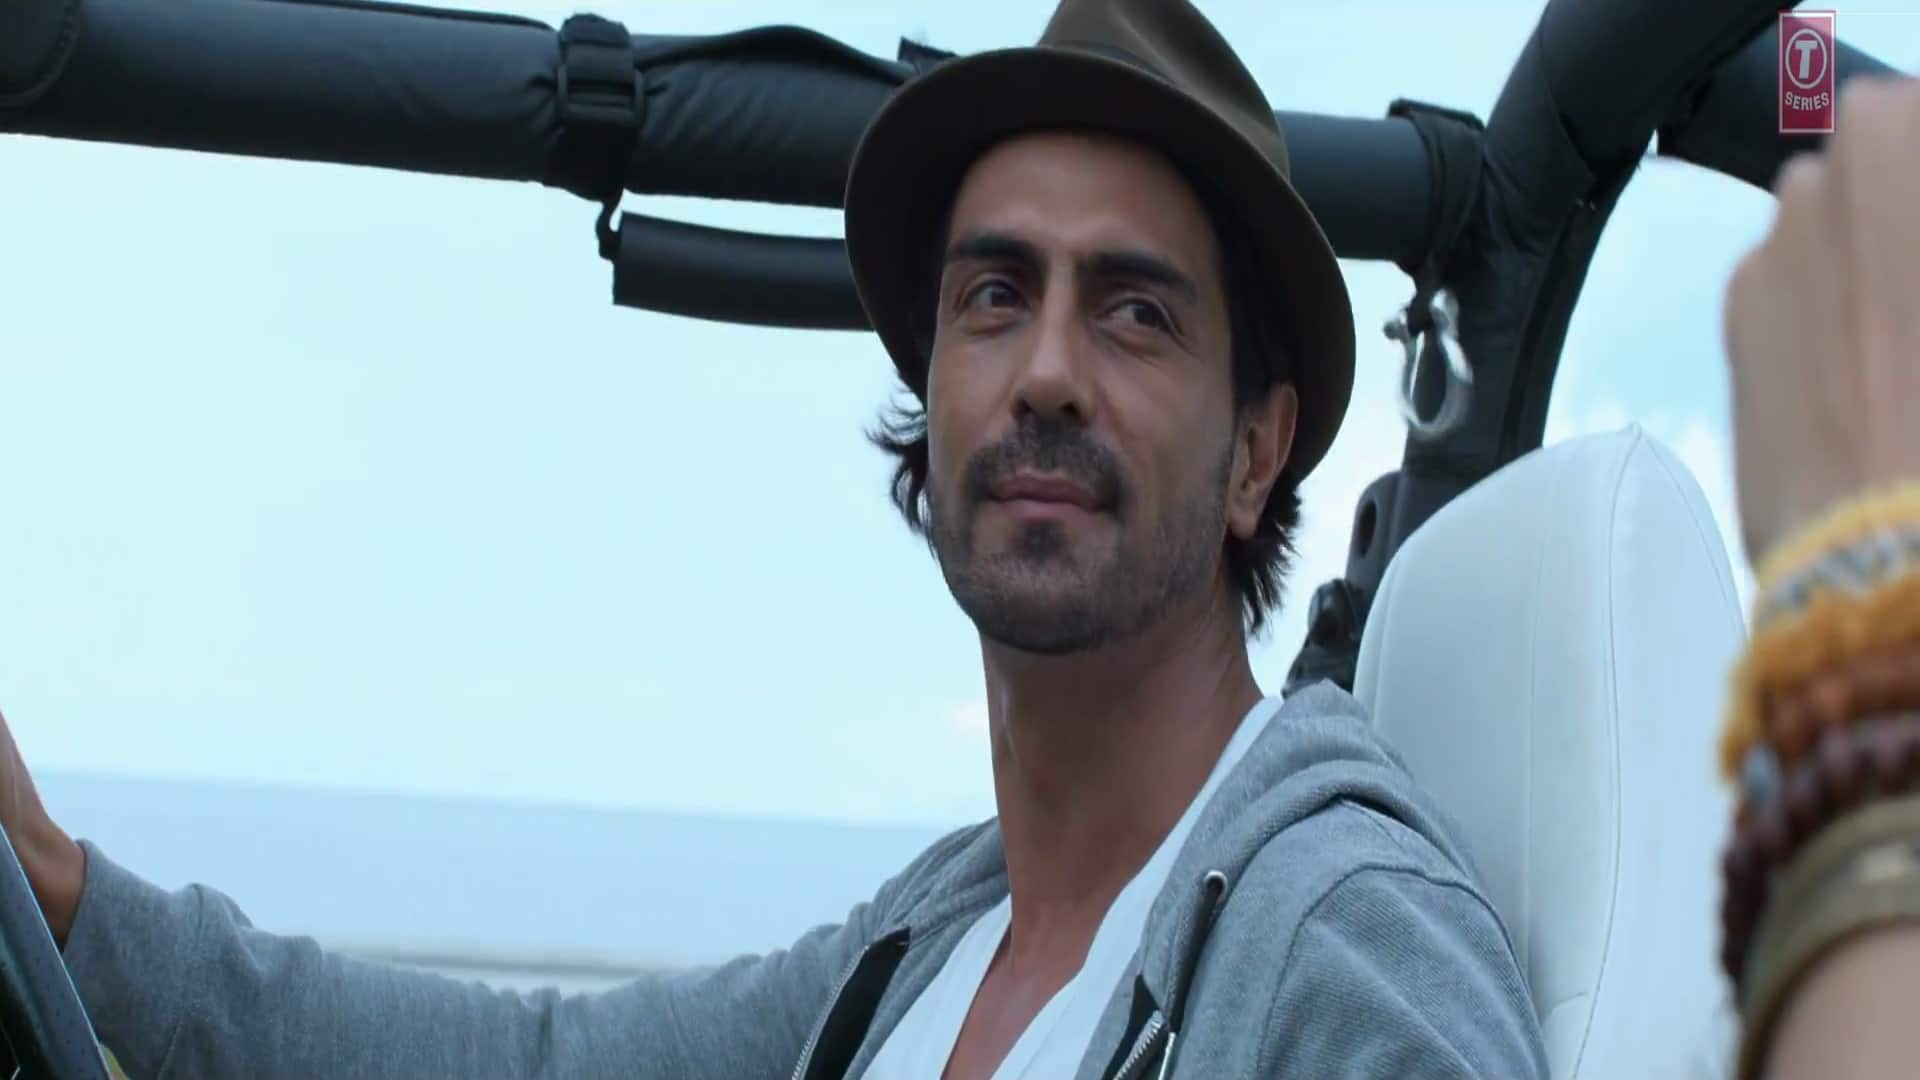 BREAKING: Arjun Rampal's Next Bollywood Outing To Be A Whodunit Thriller!